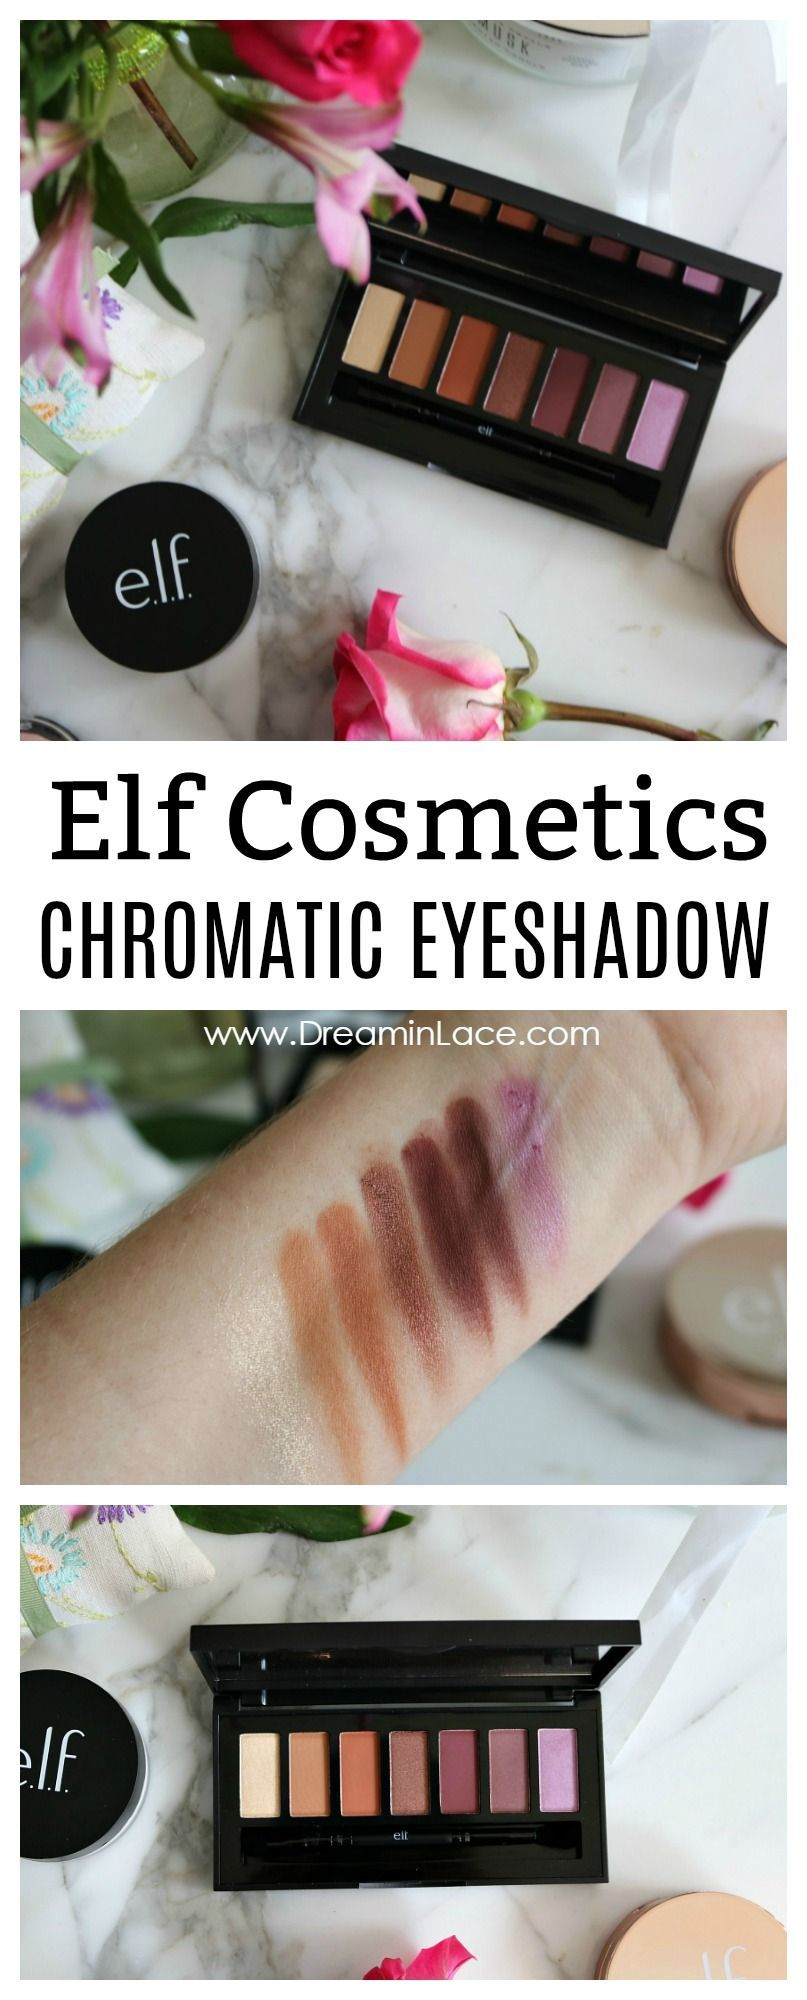 Elf Chromatic Eyeshadow Review + Swatches I DreaminLace